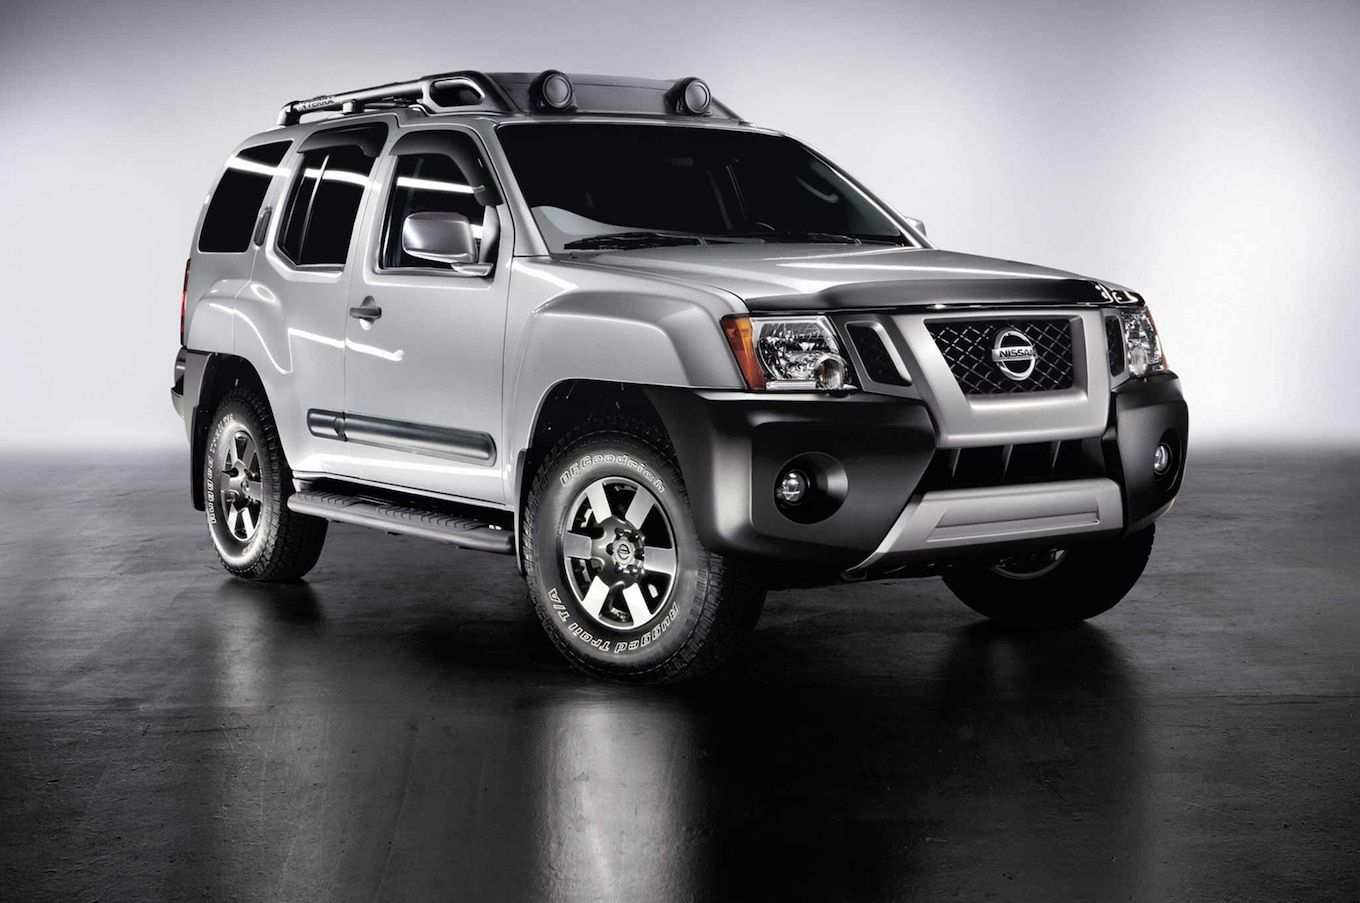 47 All New Nissan Exterior 2020 Spy Shoot with Nissan Exterior 2020